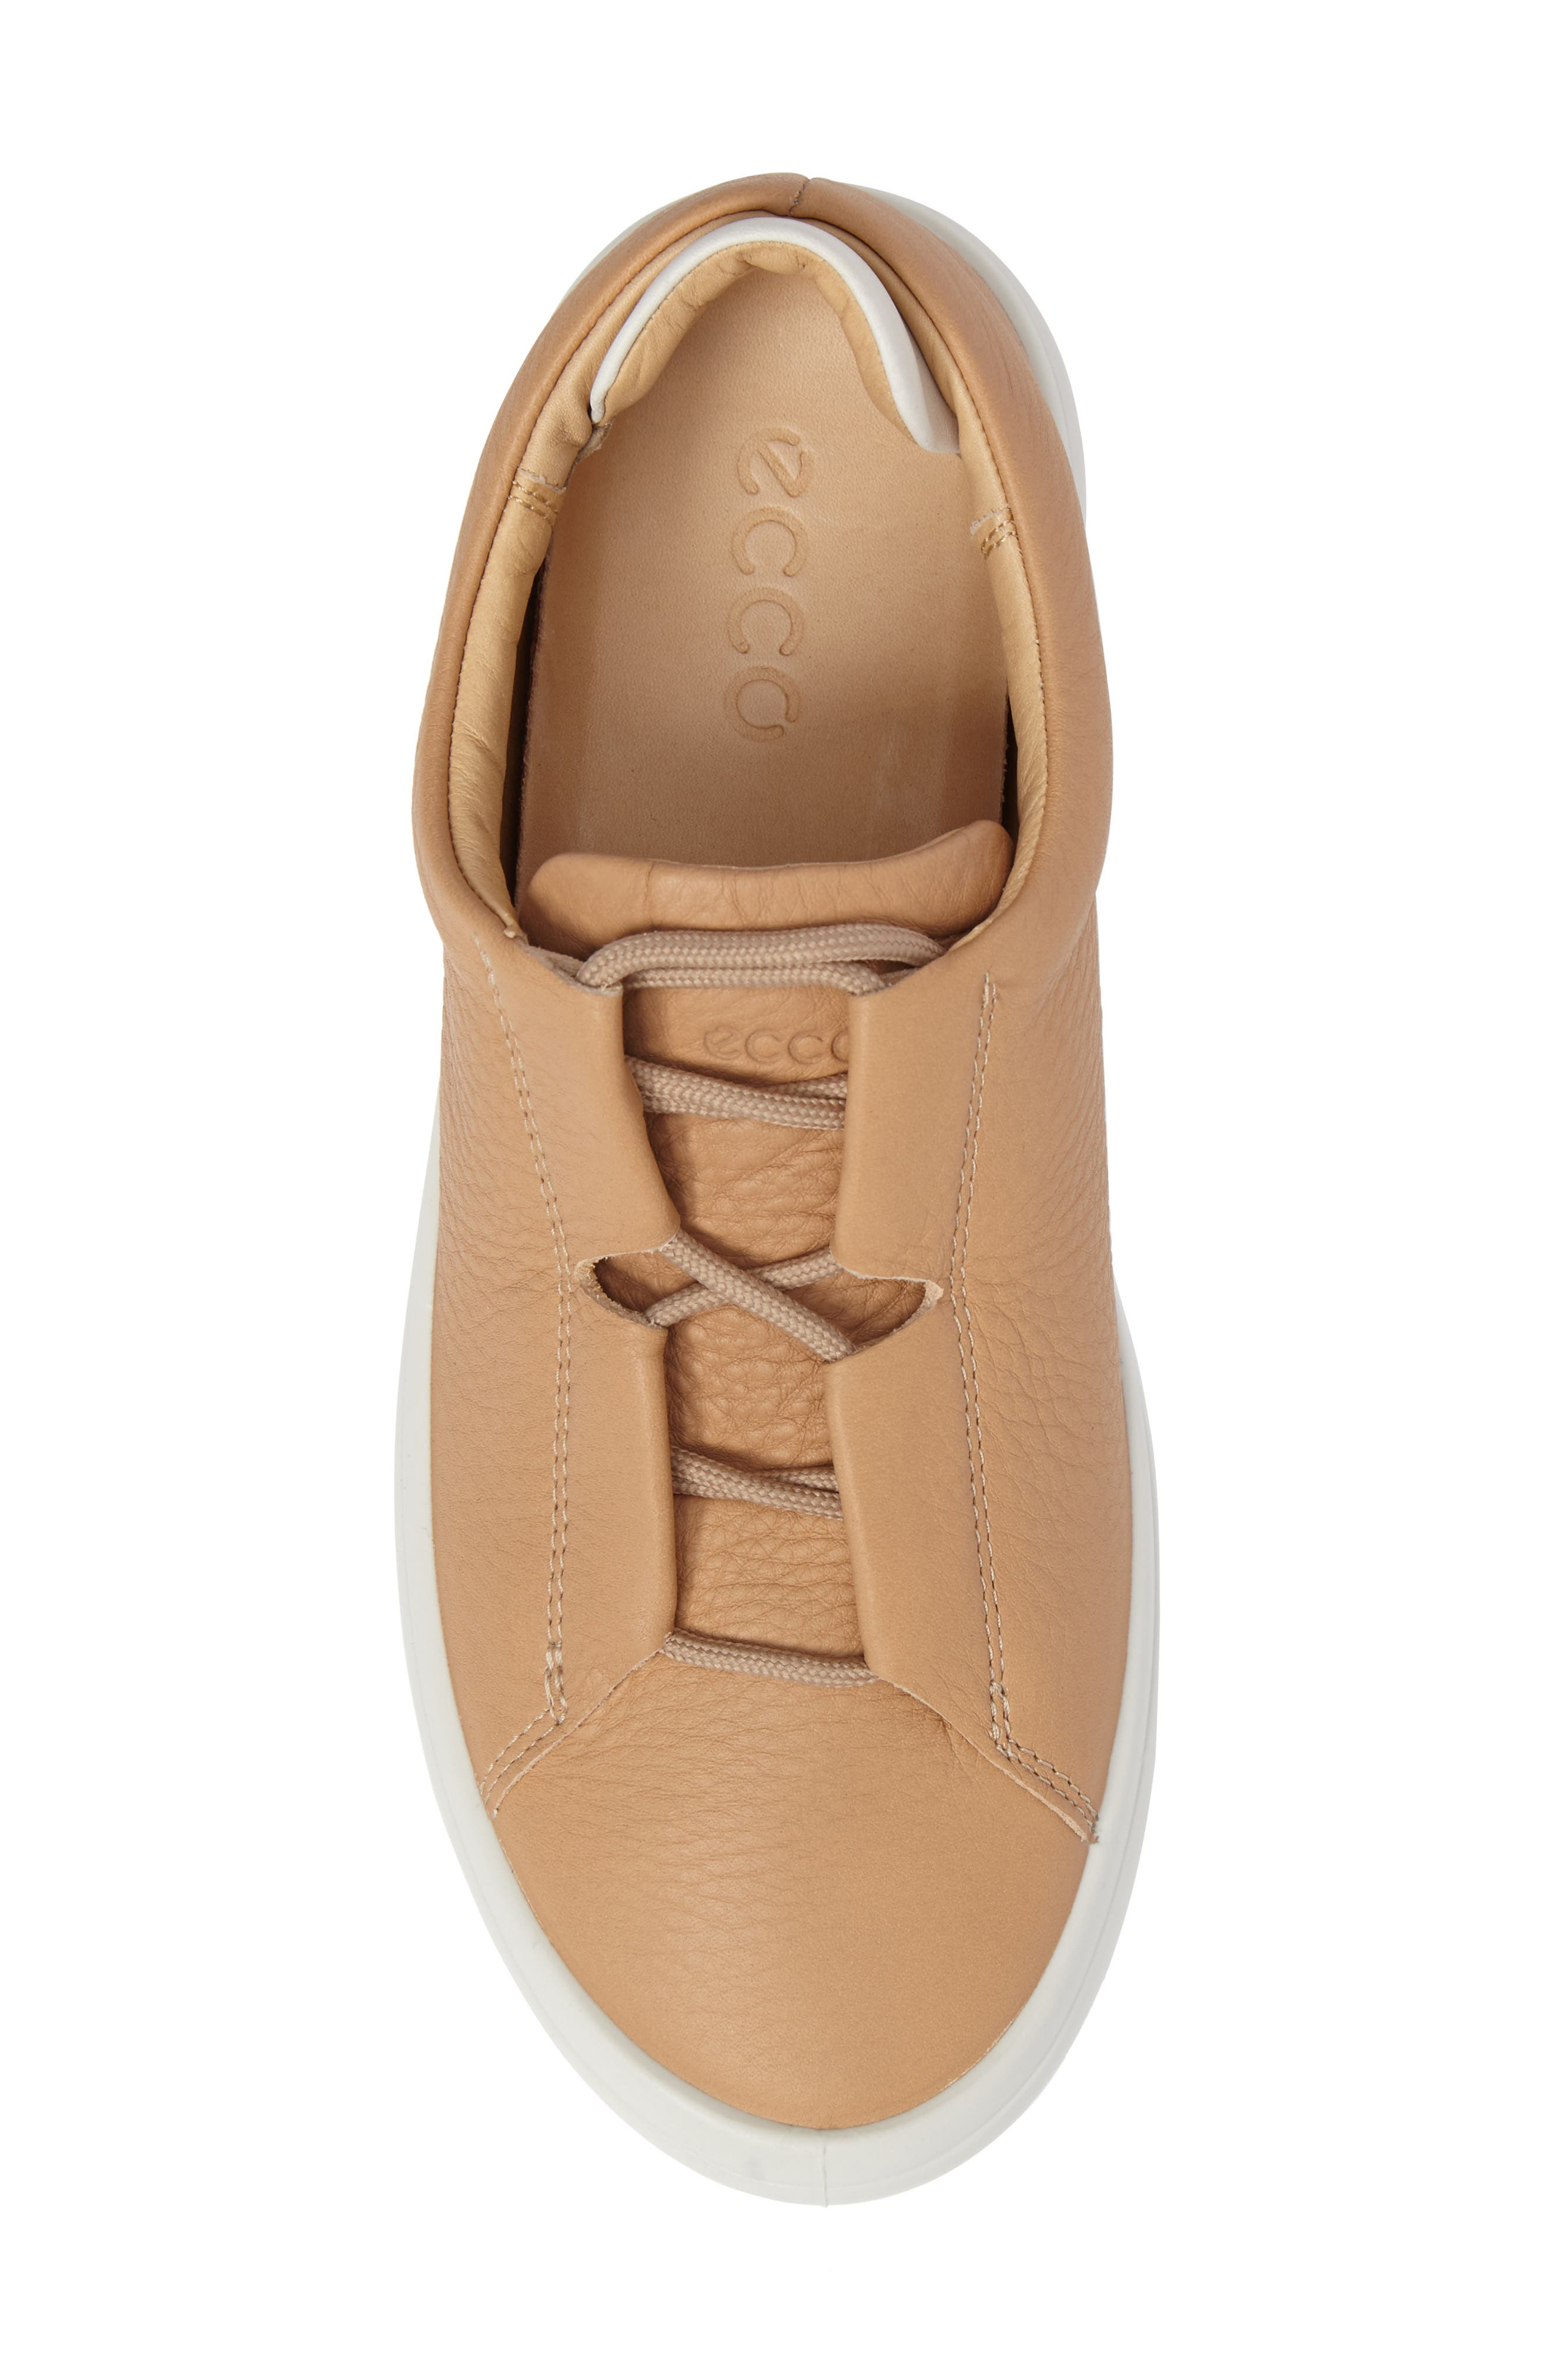 Kinhin Low Top Sneaker,                             Alternate thumbnail 5, color,                             Volluto Leather